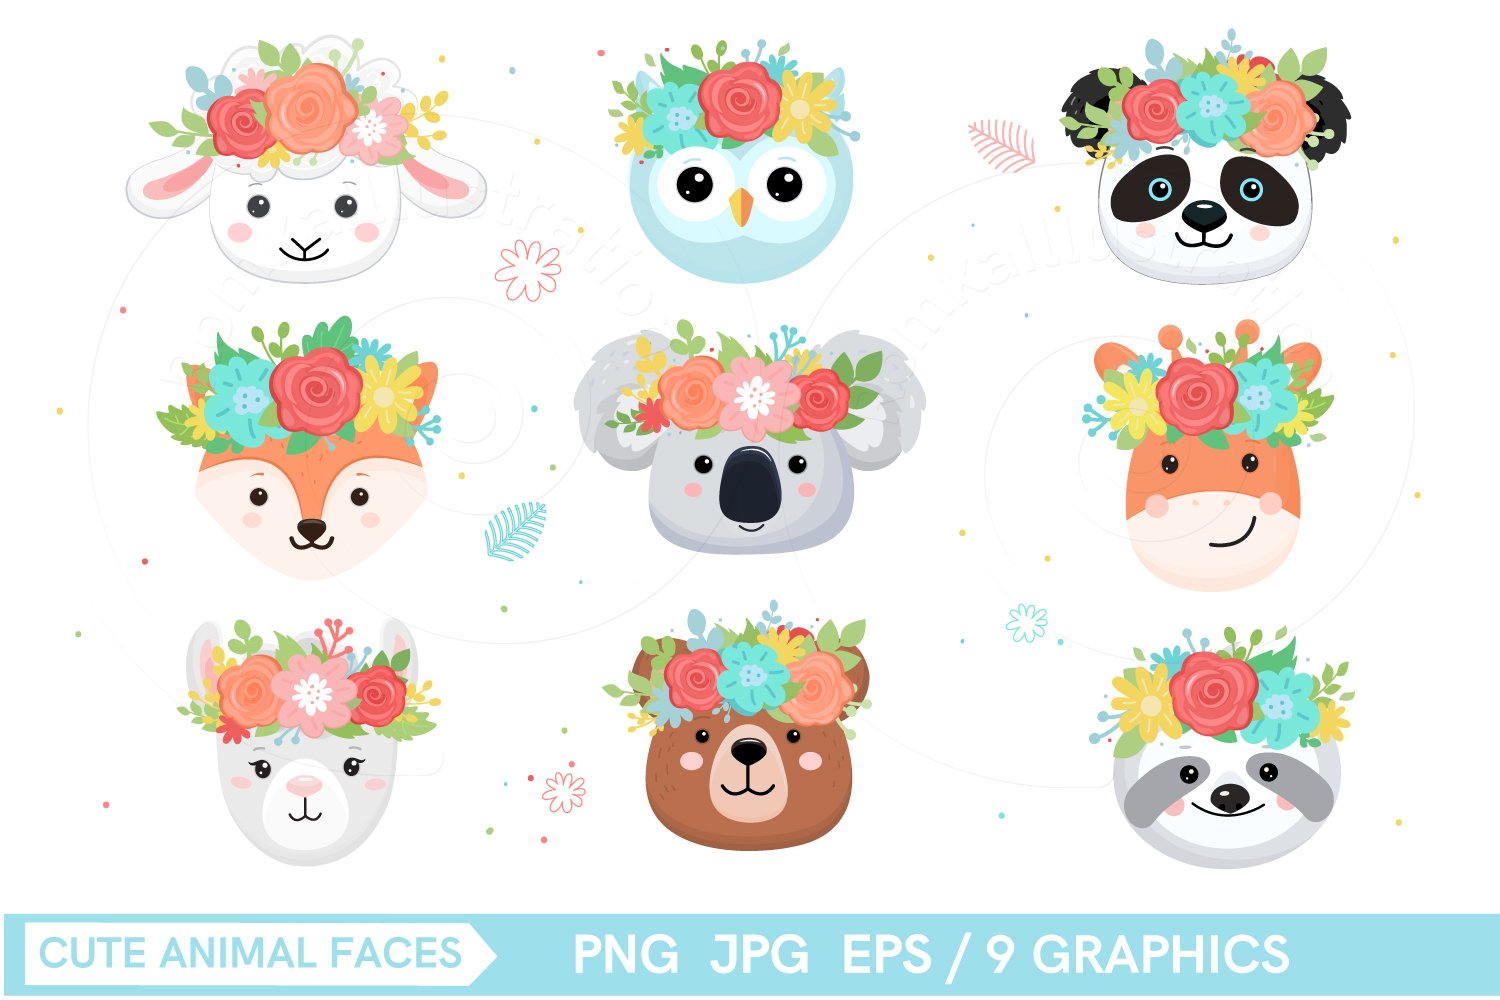 Animal Faces With Flower Crown Png 571597 Illustrations Design Bundles Golden crown, crown clipart, golden, an crown png transparent clipart image and psd file for free download. animal faces with flower crown png